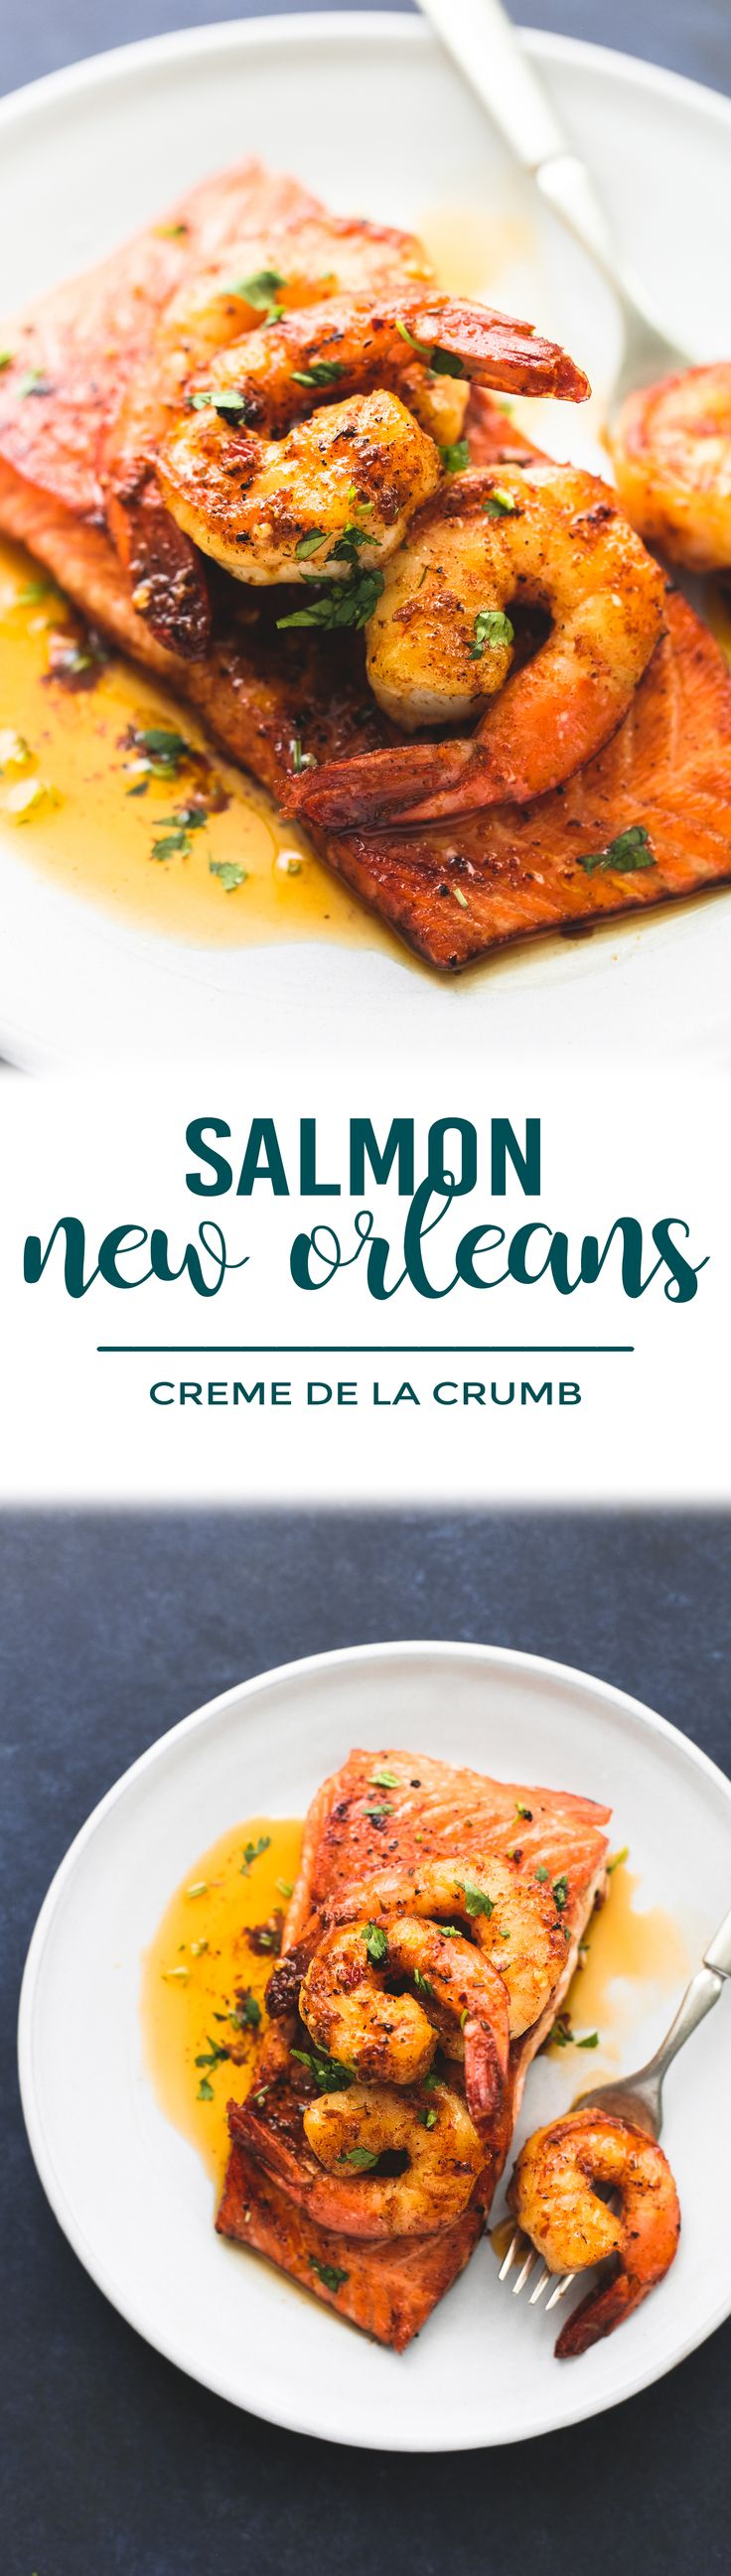 Sweet and savory pan-seared salmon topped with sautéed shrimp in cajun butter sauce. Salmon New Orleans is an unforgettable 30 minute meal your family will crave! | lecremedelacrumb.com